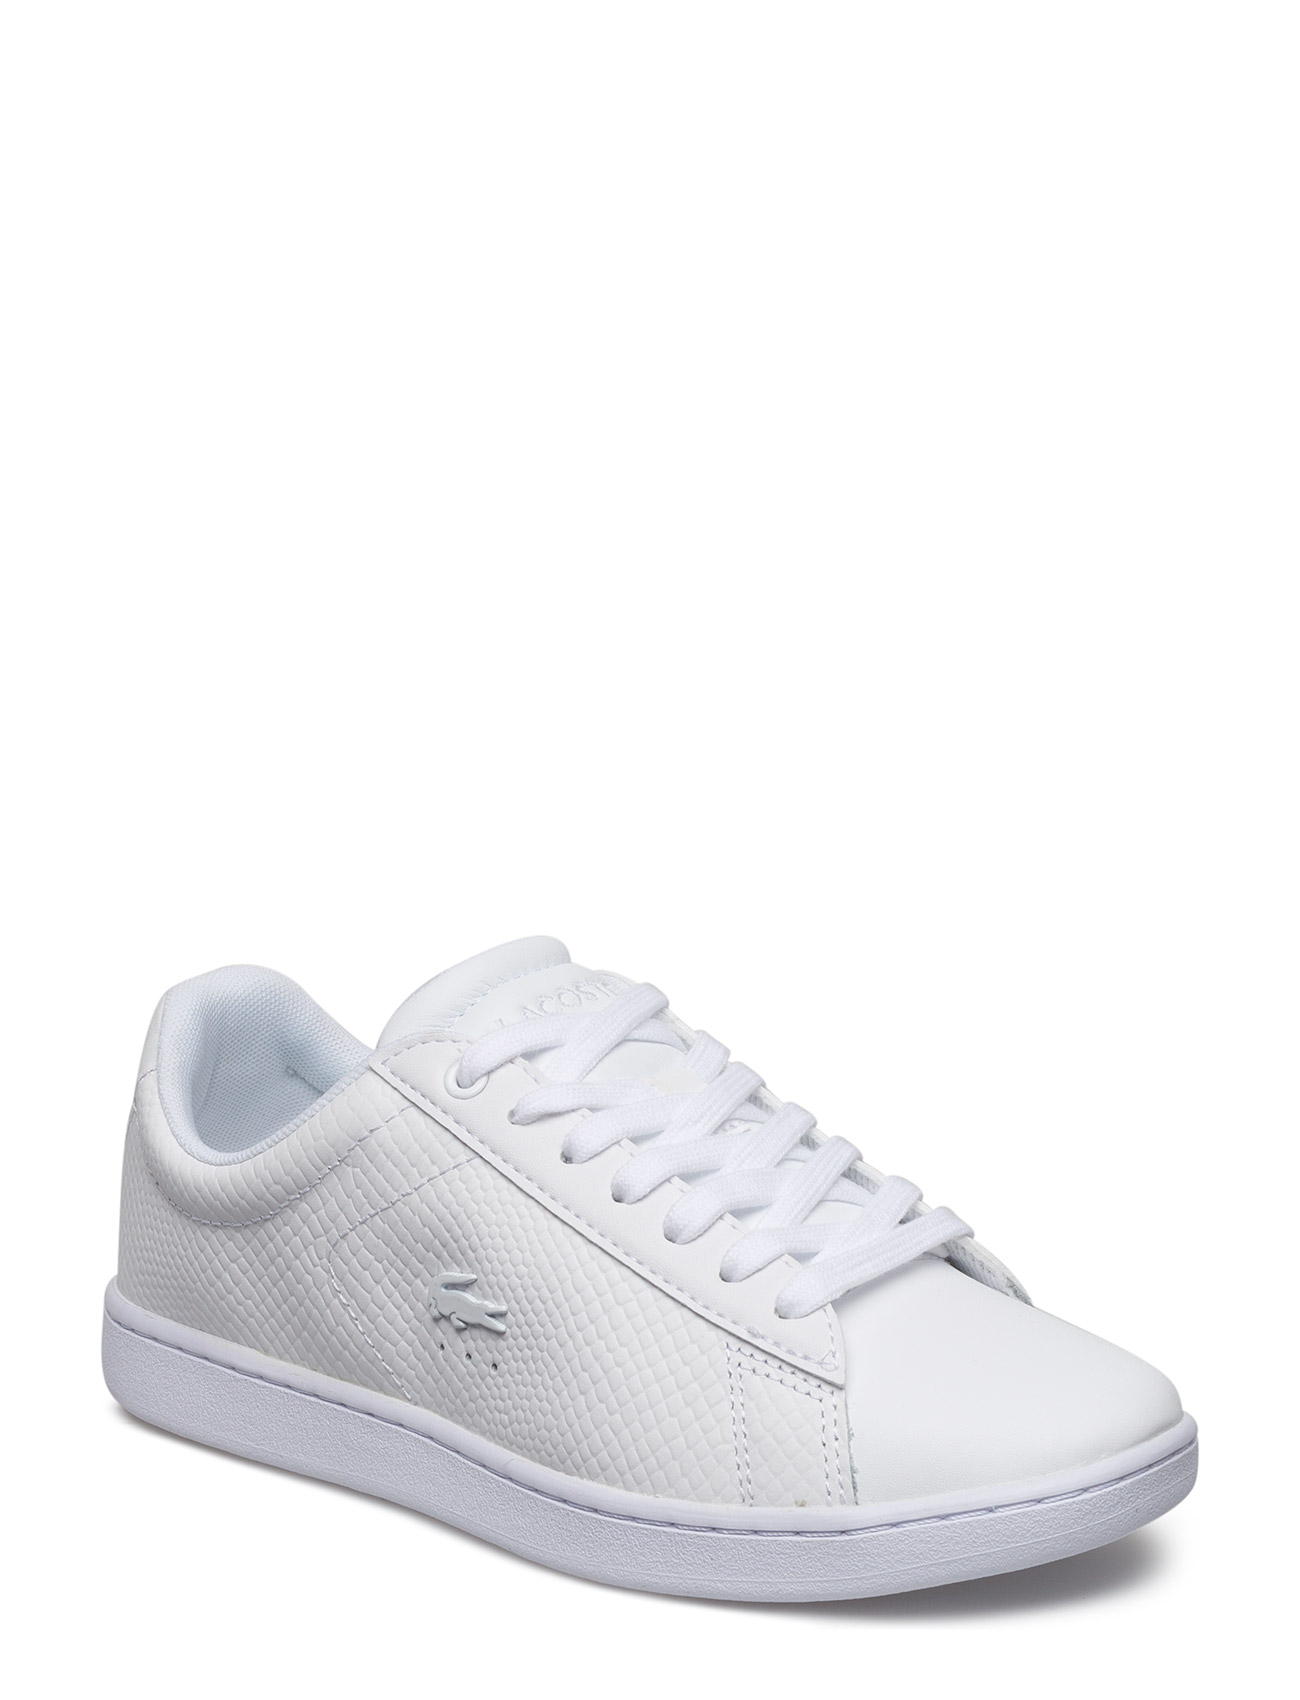 Carnaby evo 317 3 fra lacoste shoes fra boozt.com dk